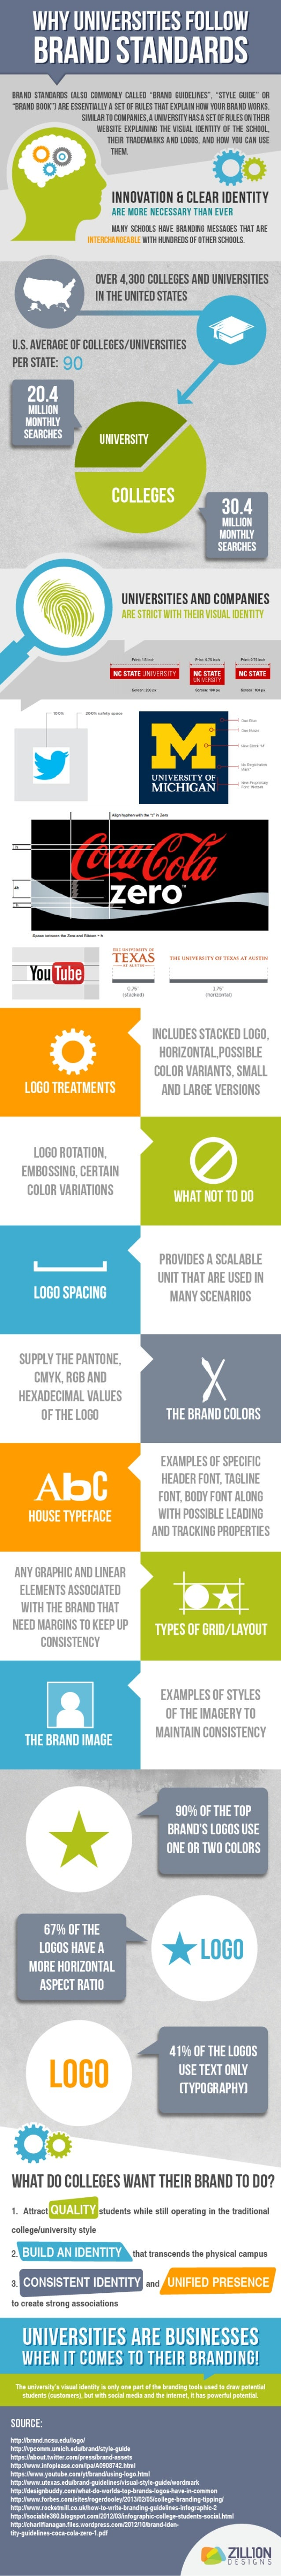 [INFOGRAPHIC]: Why Universities Follow Brand Standards